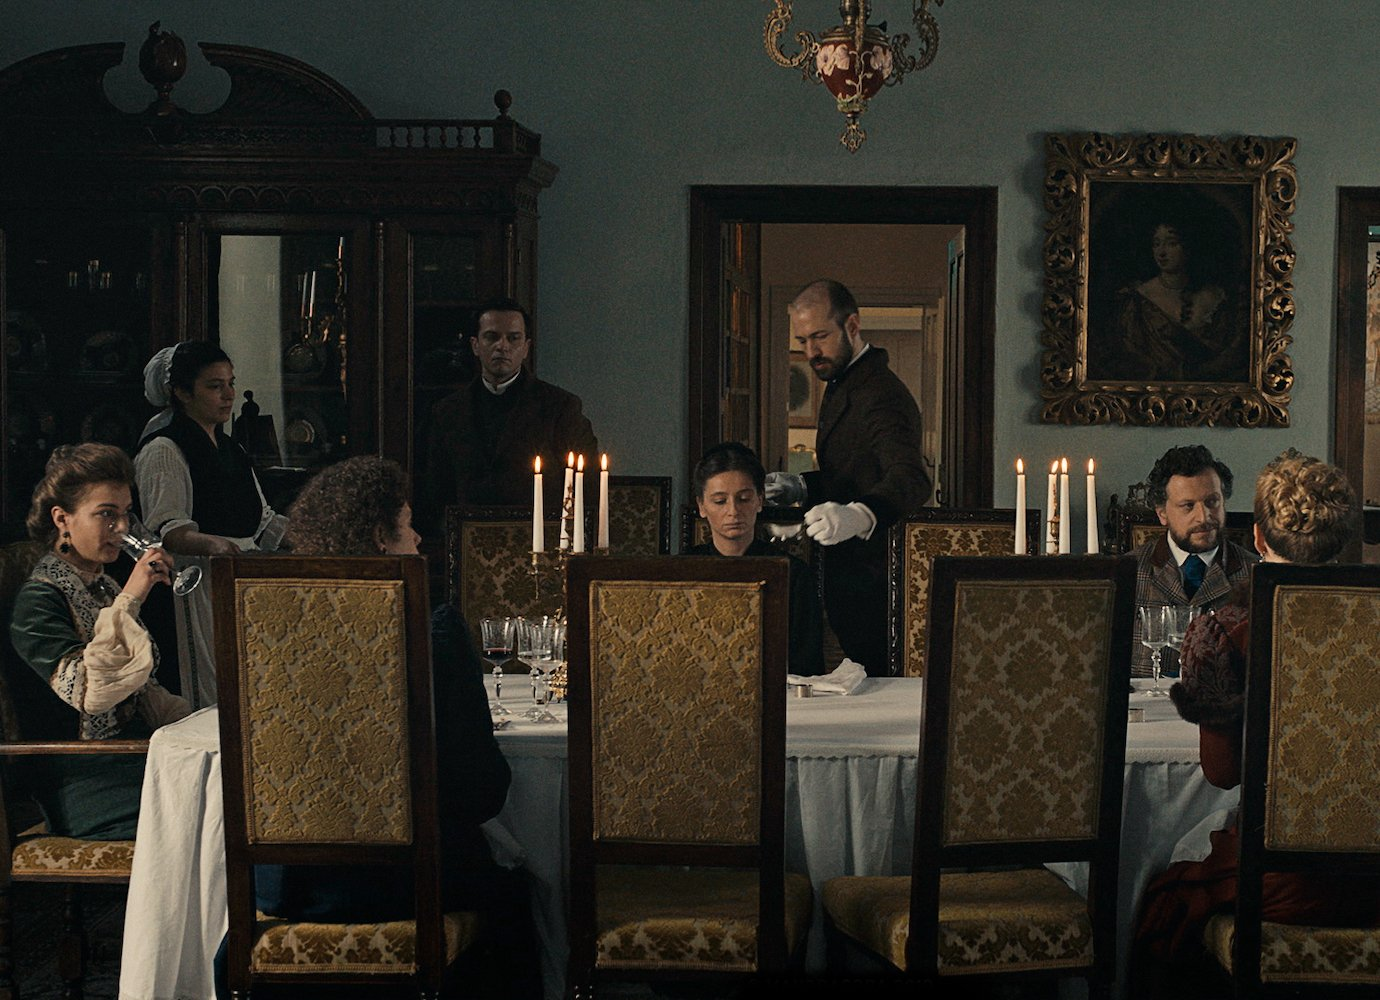 Set on a Transylvanian estate, Malmkrog is a journey through a dreamlike, philosophical dinner party | Film of the Week